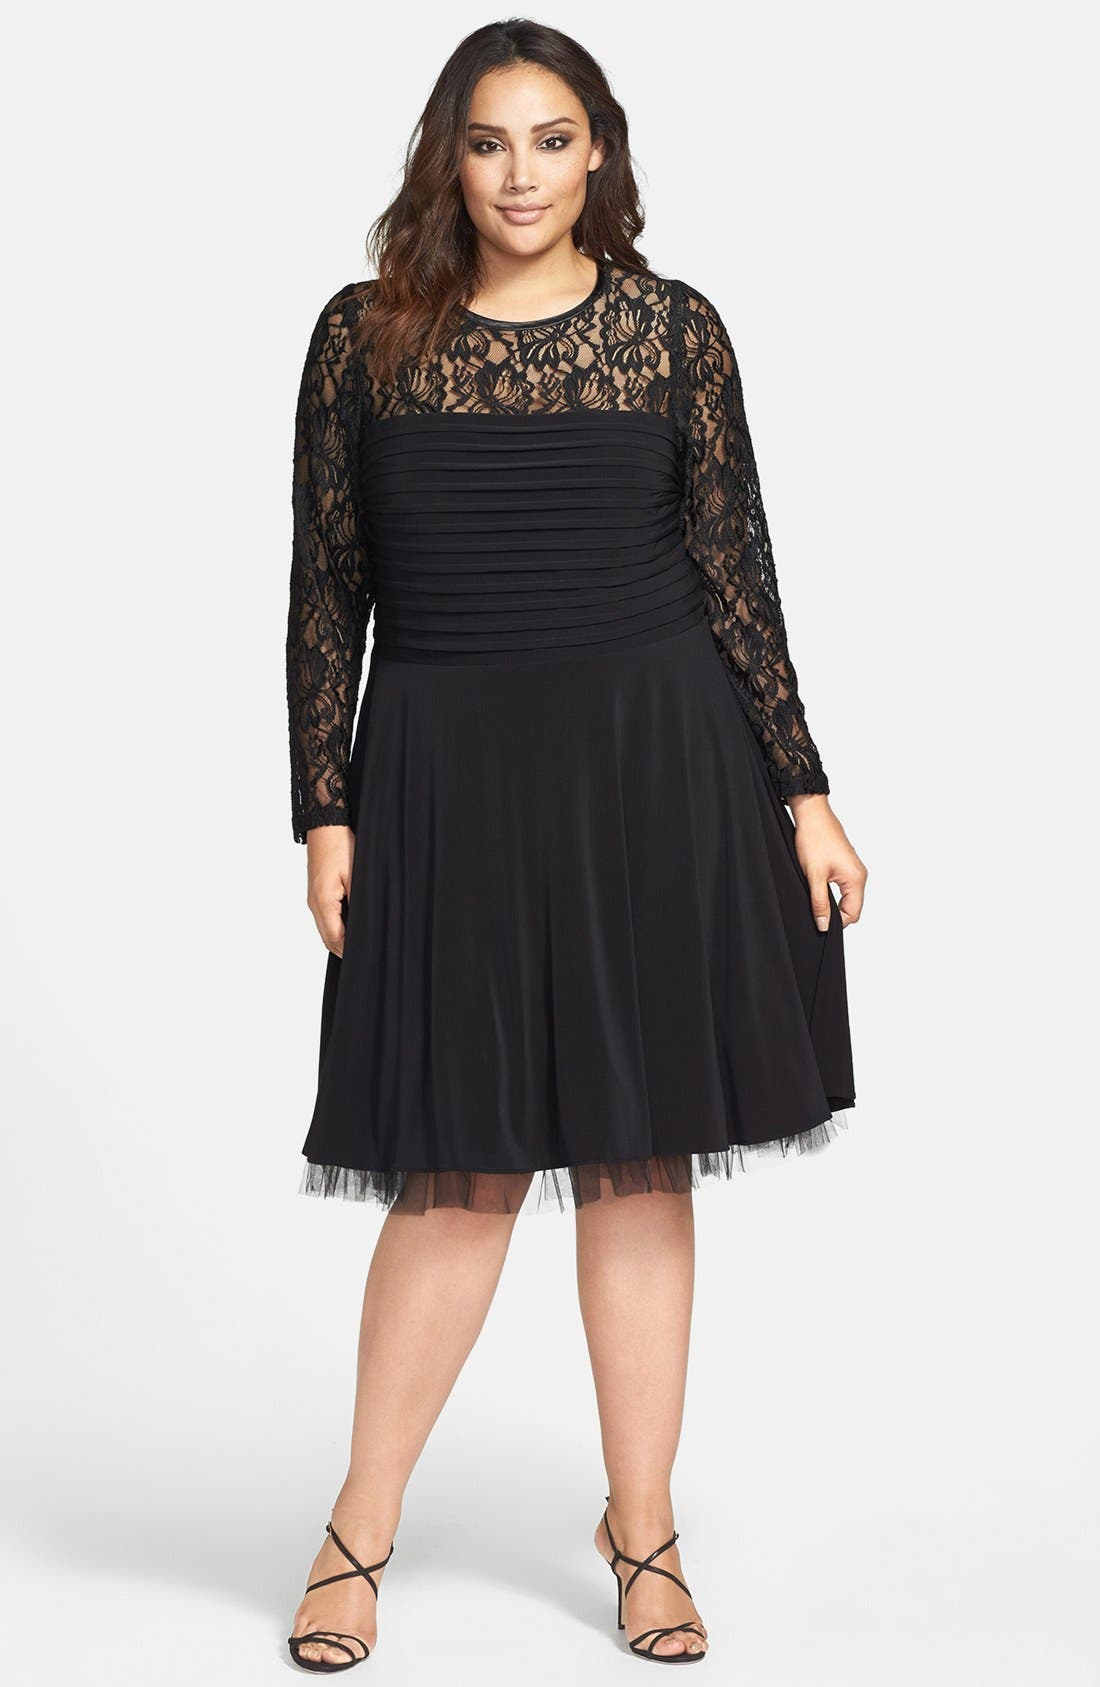 Alternate Image 1 Selected - Betsy & Adam Lace Overlay Fit & Flare Dress (Plus Size)